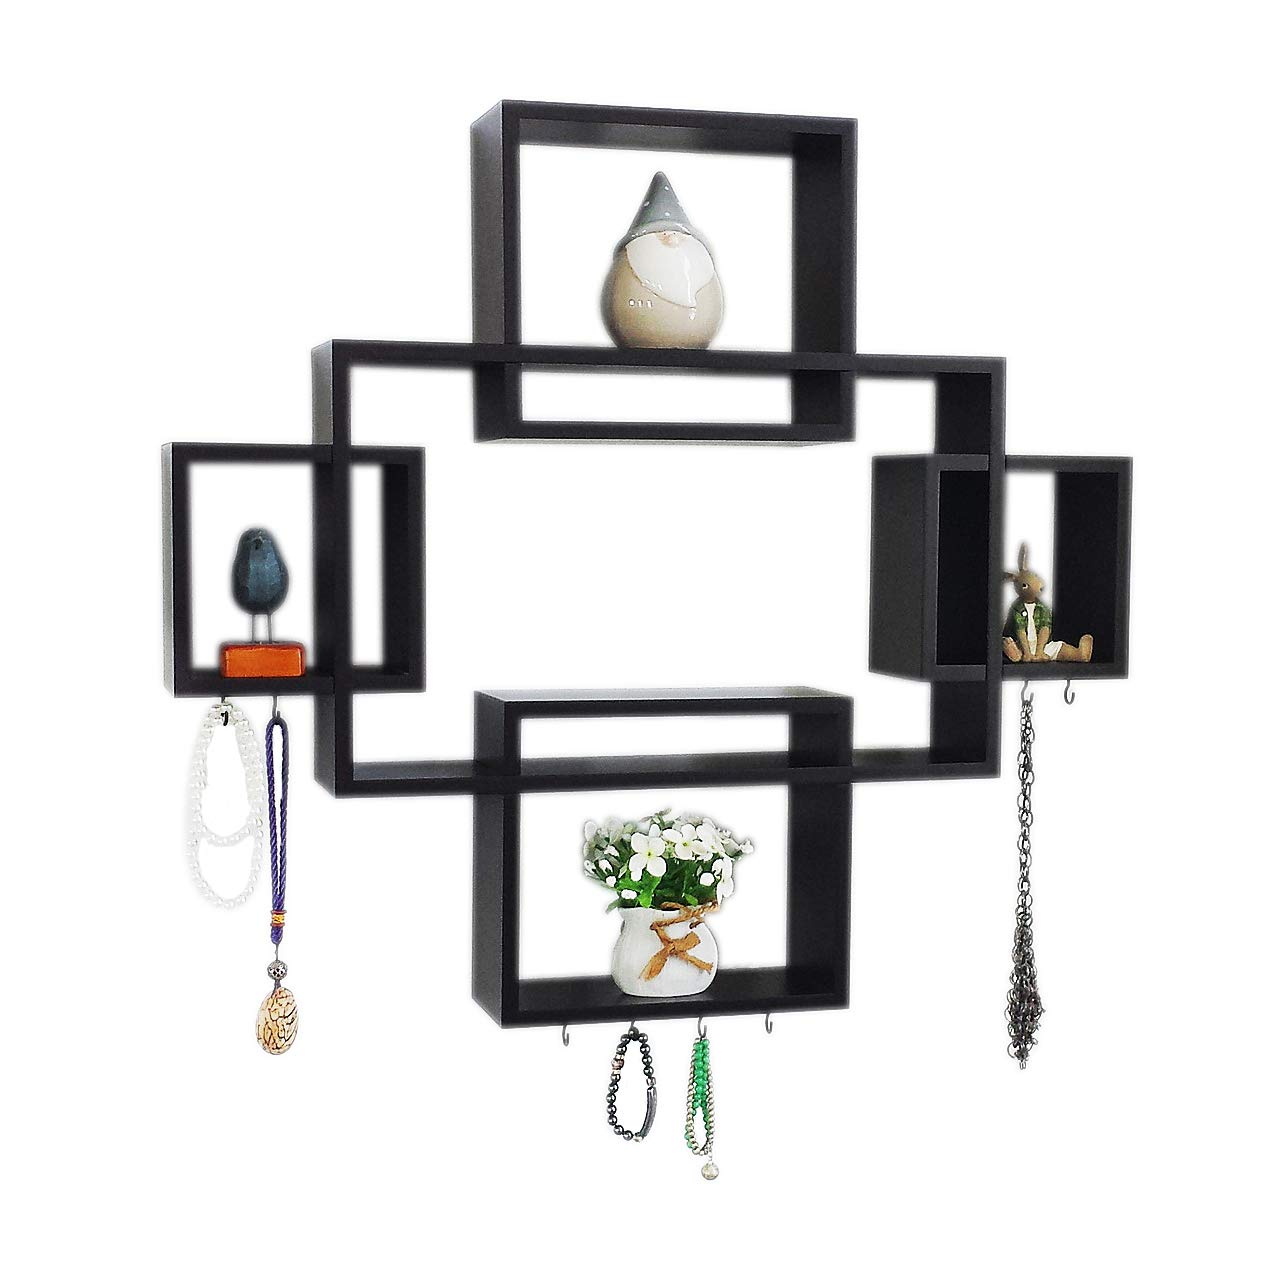 set cubes with free extra jewellery hooks rectangular floating shelf interlocking wall intersecting squares wooden mounted horizontally vertically hanging shelves desk matching